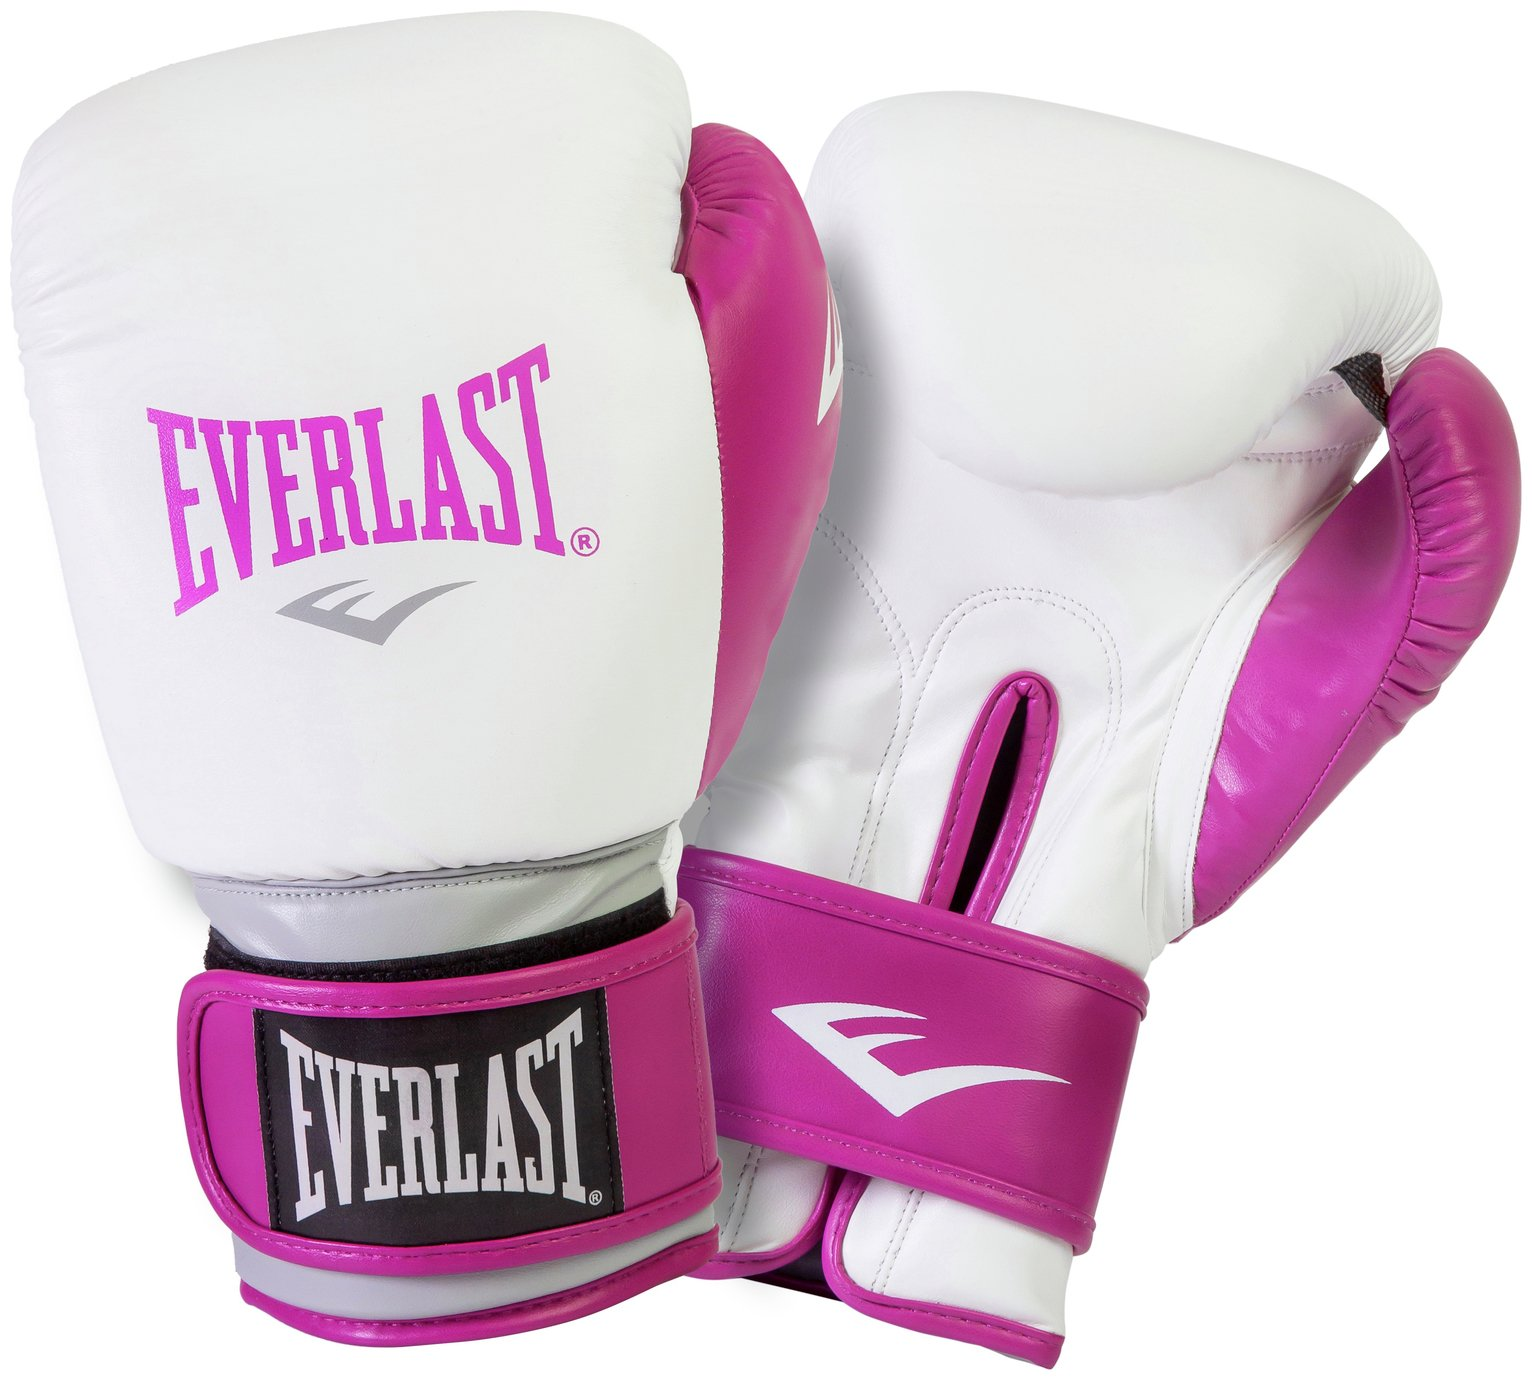 Everlast Women's Boxercise Set